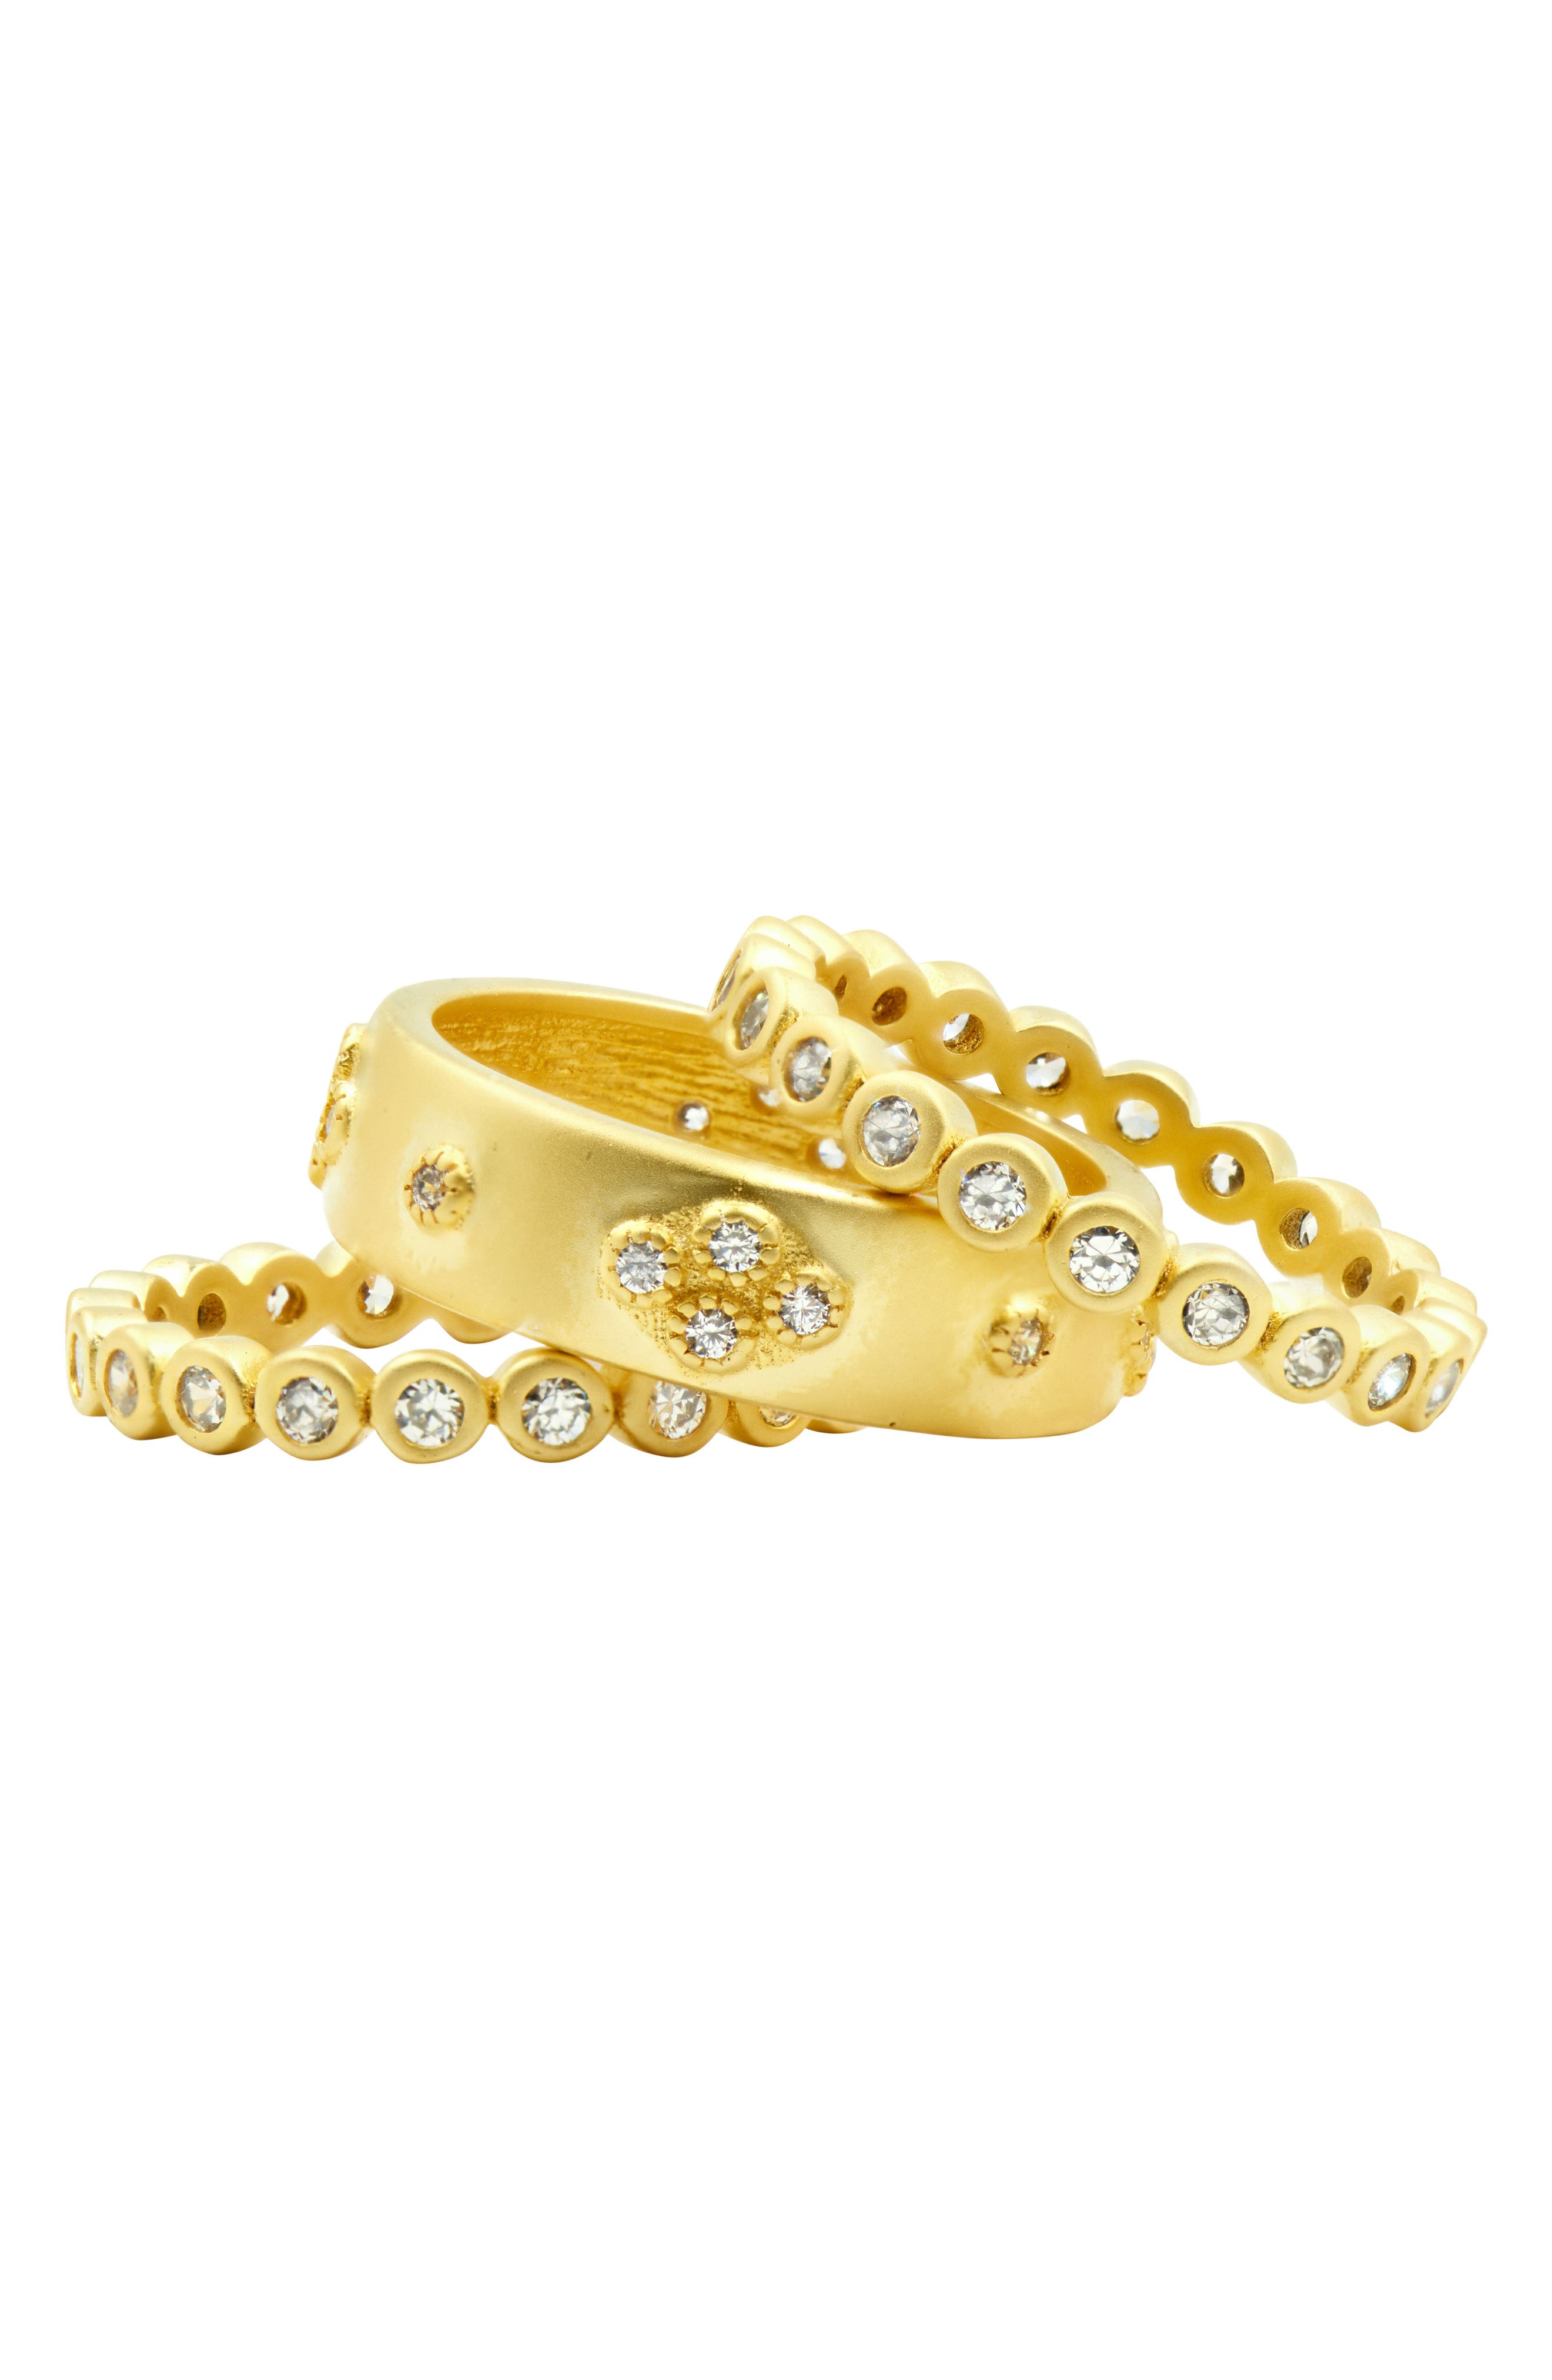 Audrey Set of 3 Cubic Zirconia Stacking Rings,                             Alternate thumbnail 4, color,                             Gold/ Clear